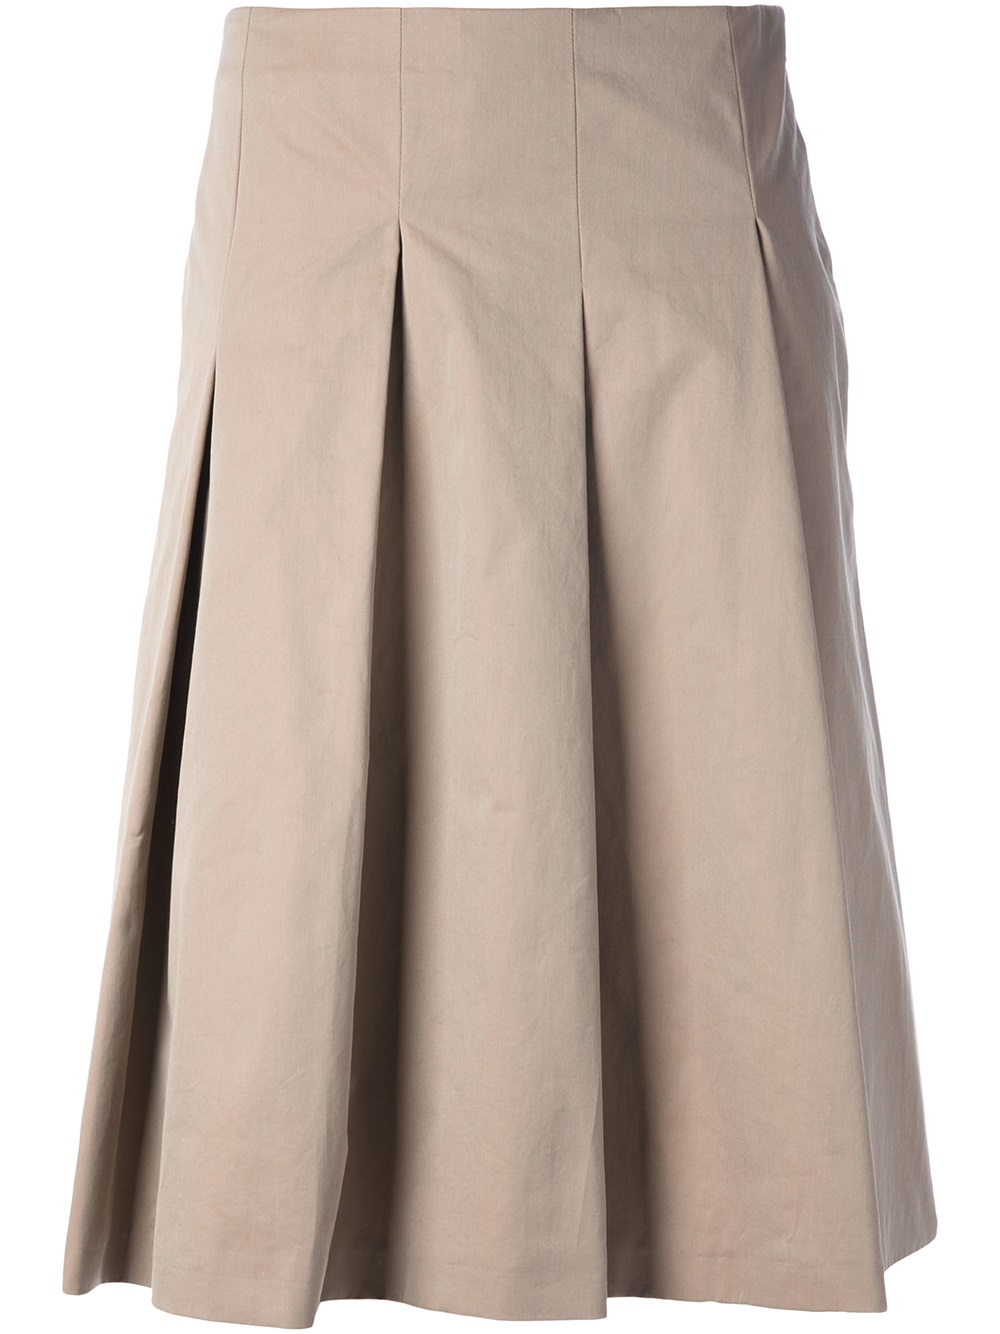 Lyst Max Mara Pleated Skirt In Natural